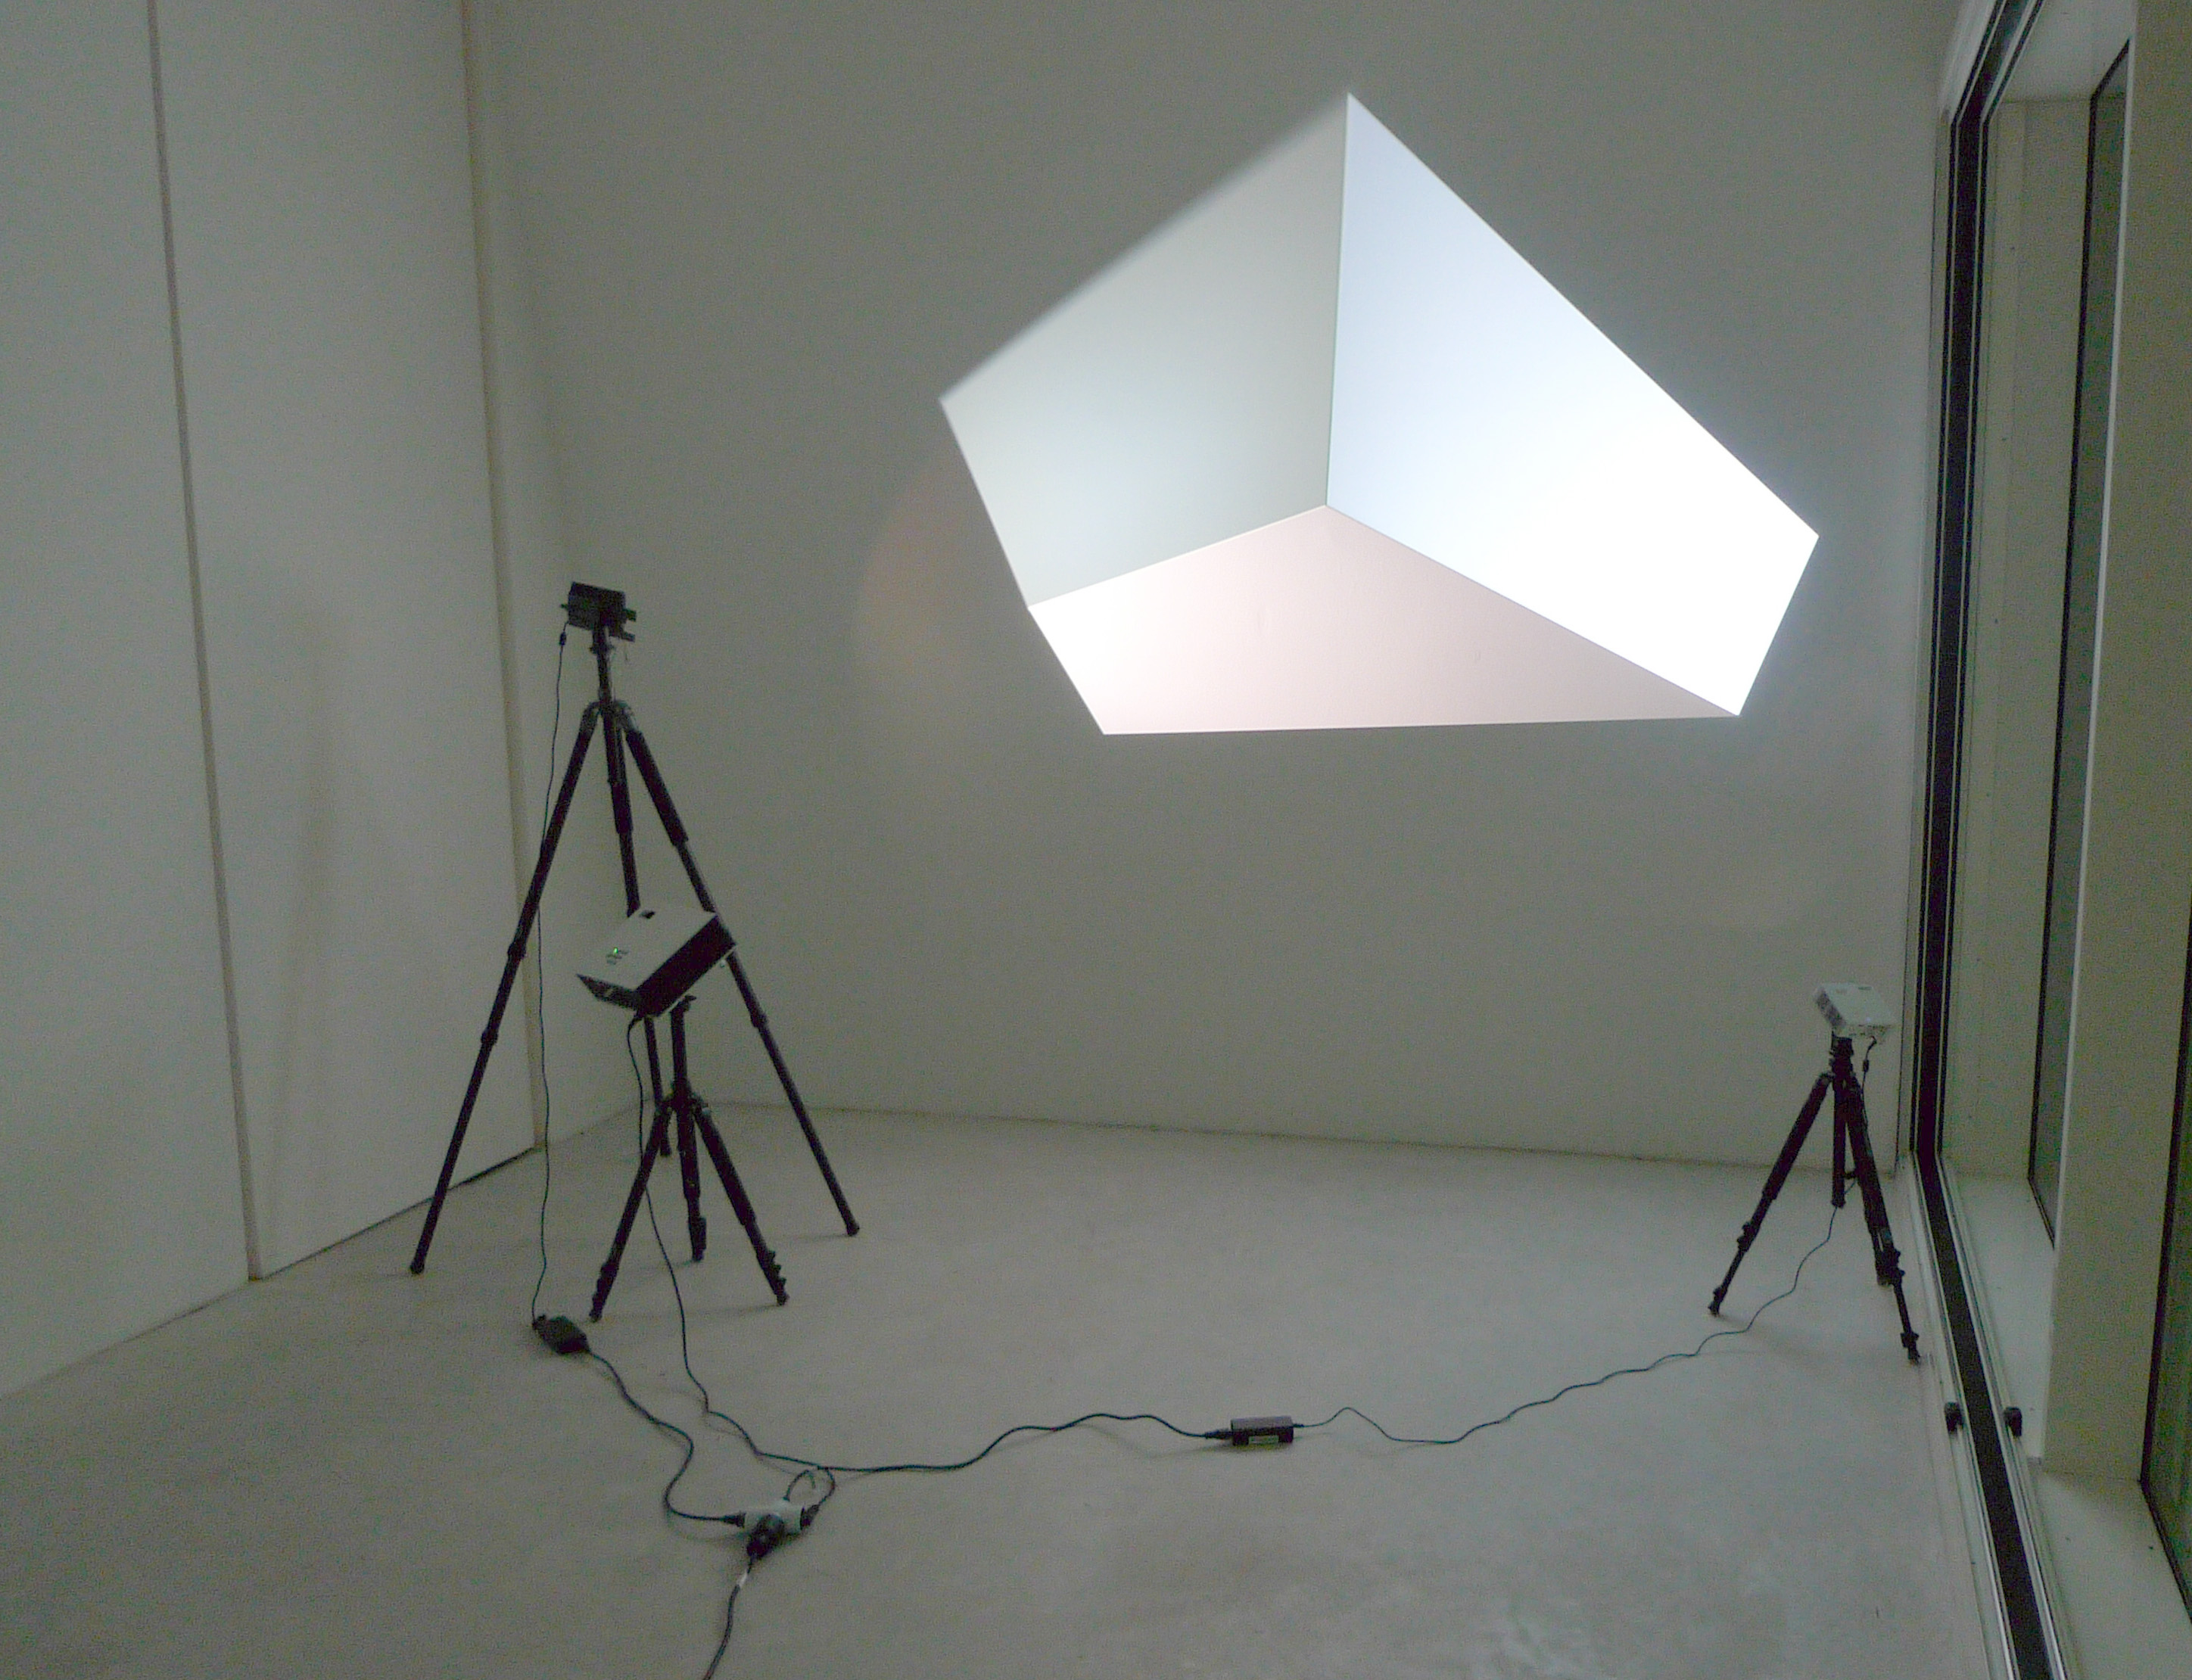 Vadim Fishkin, Solidarity 3D, 3 projectors, 3 tripods, 2015